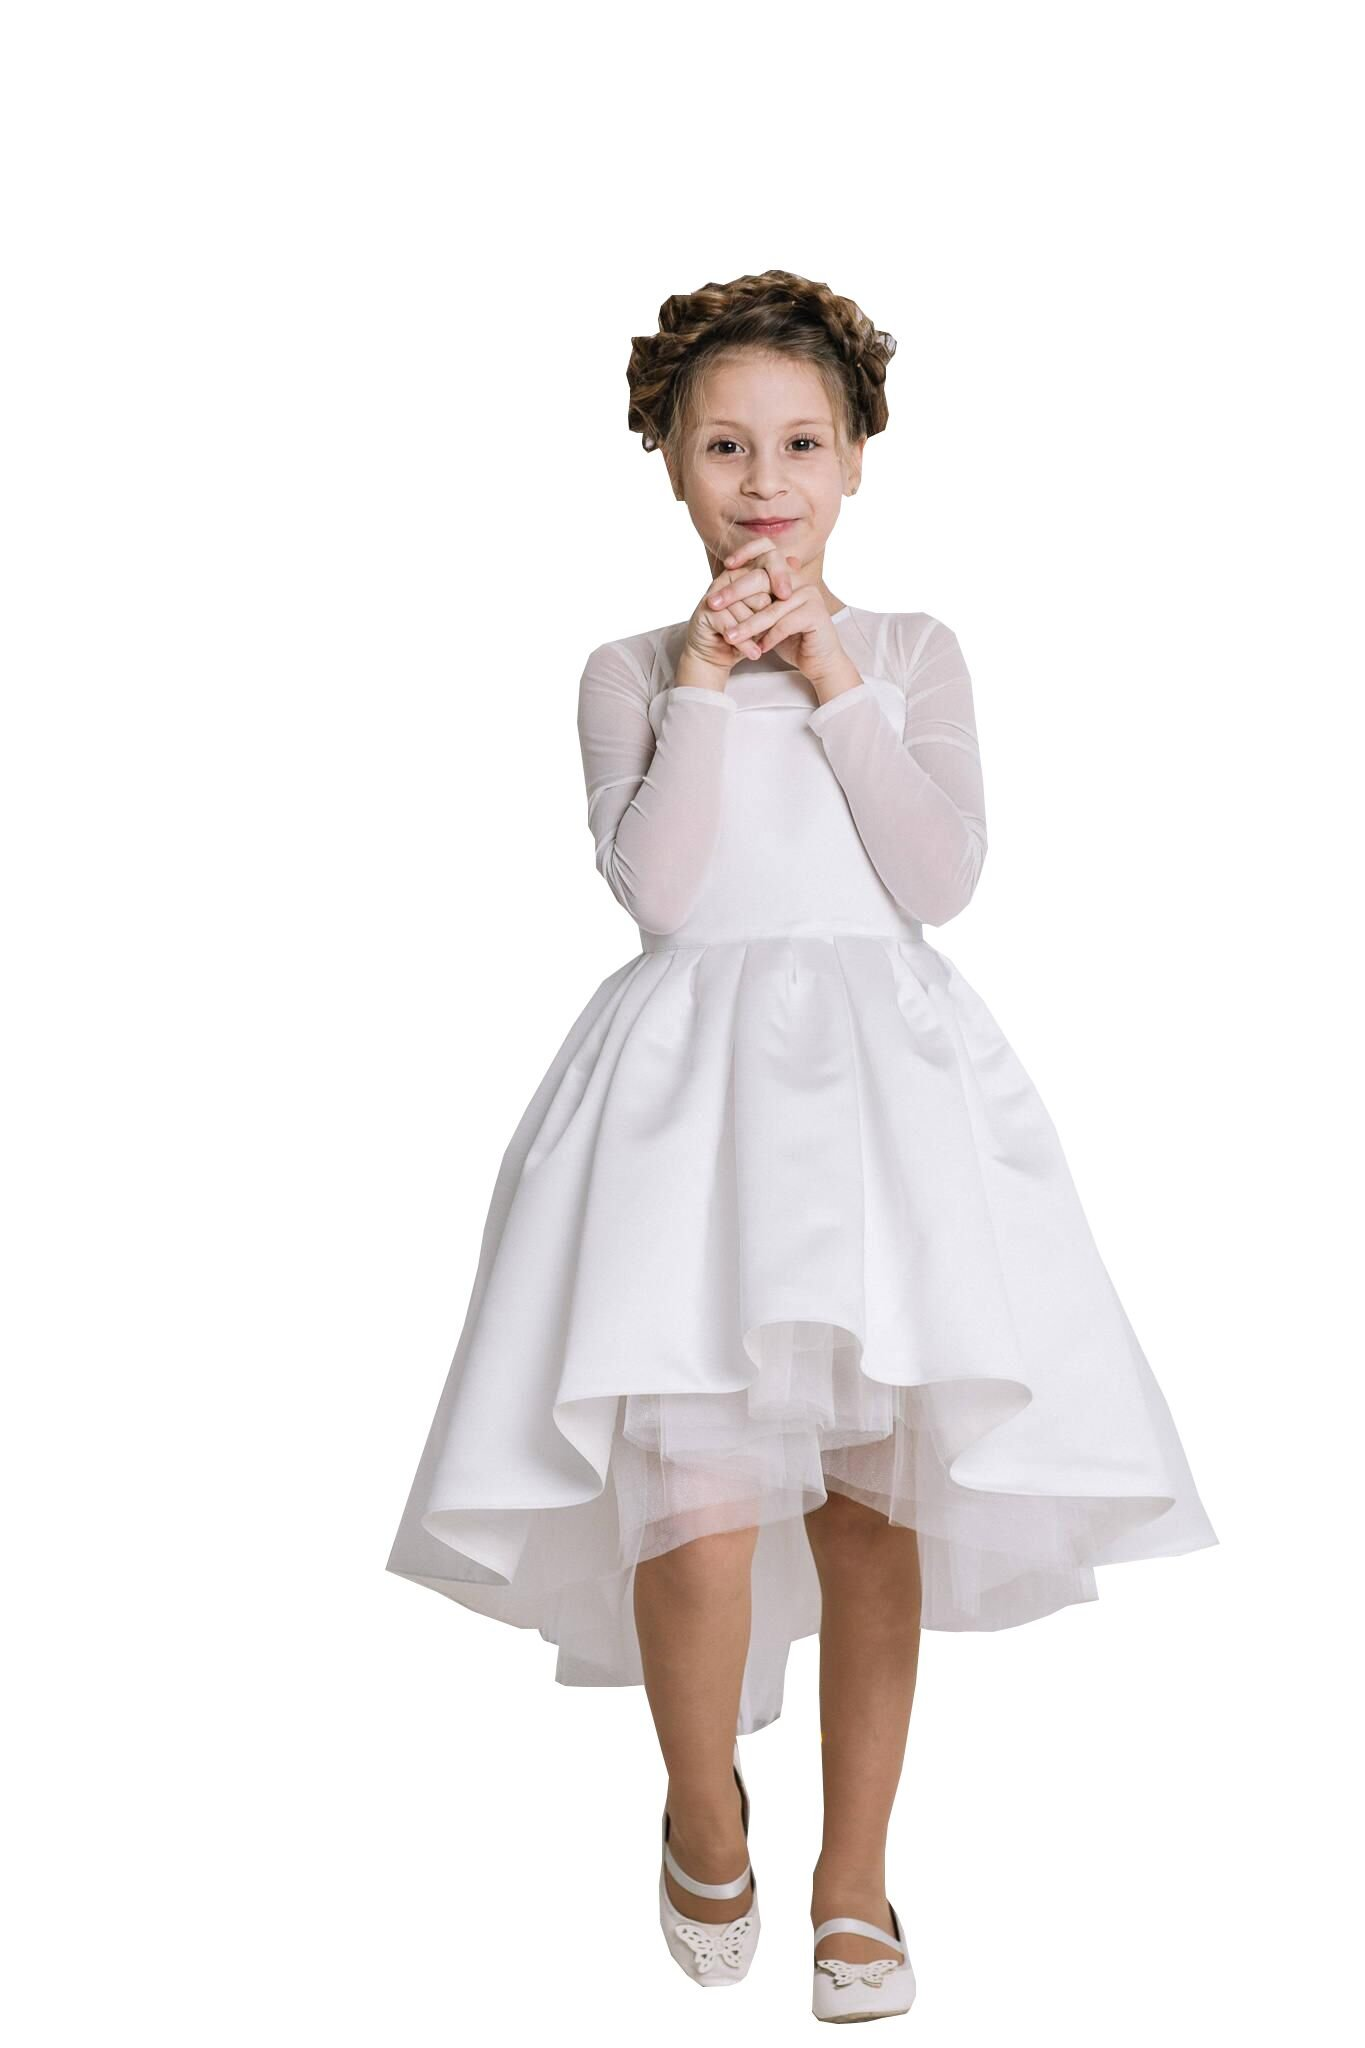 Banfvting Mid Length Hi-Lo Flower Girl Dress Birthday Gown Kids